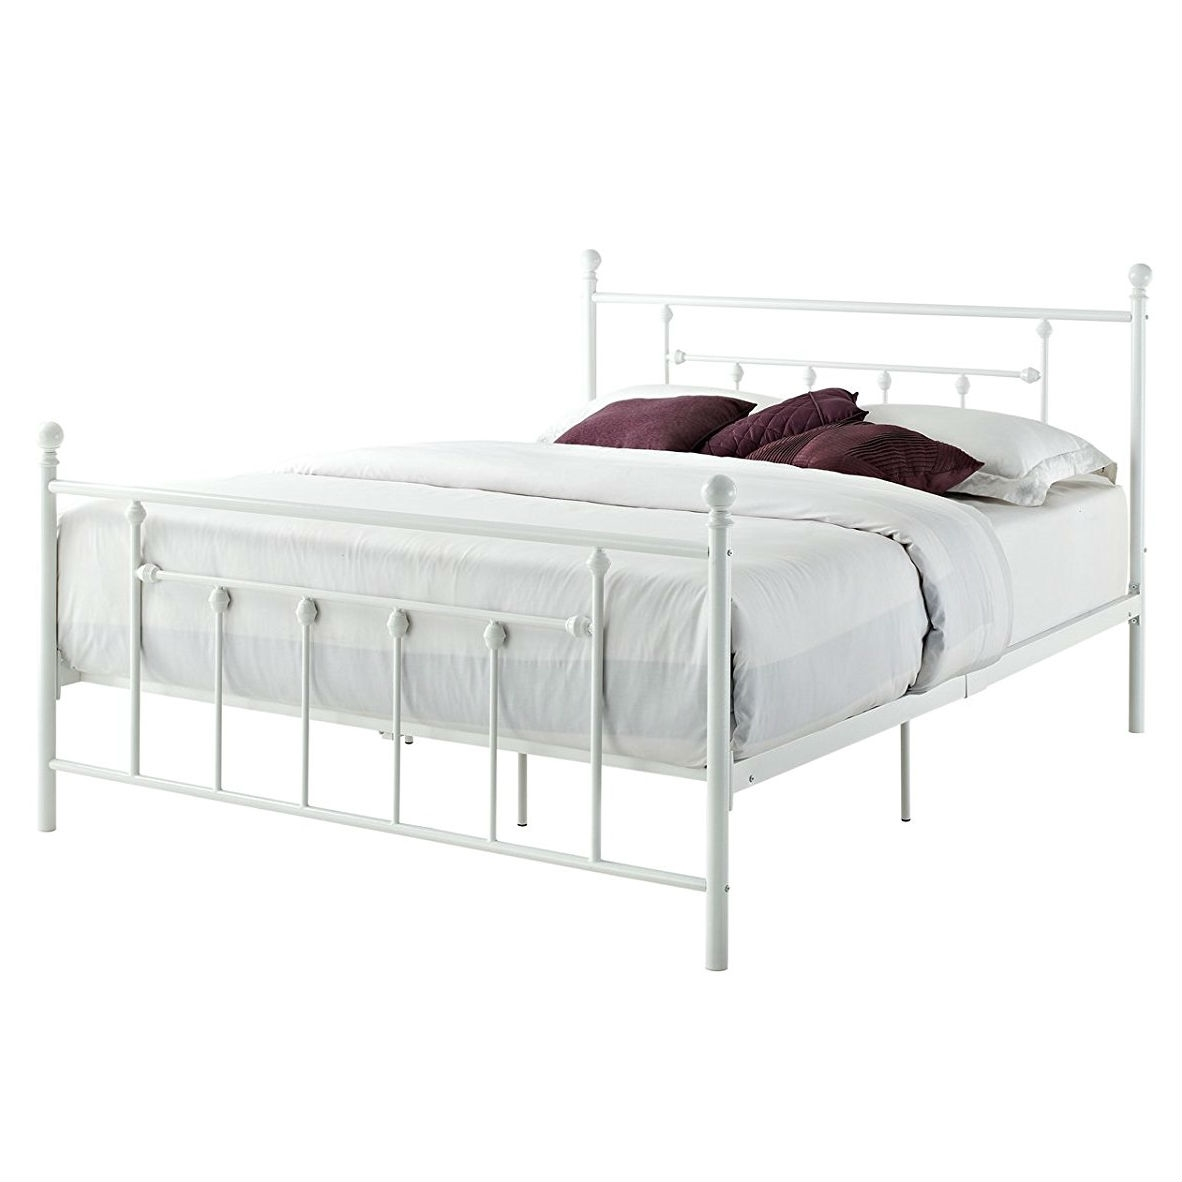 Full Size White Metal Platform Bed Frame With Headboard And